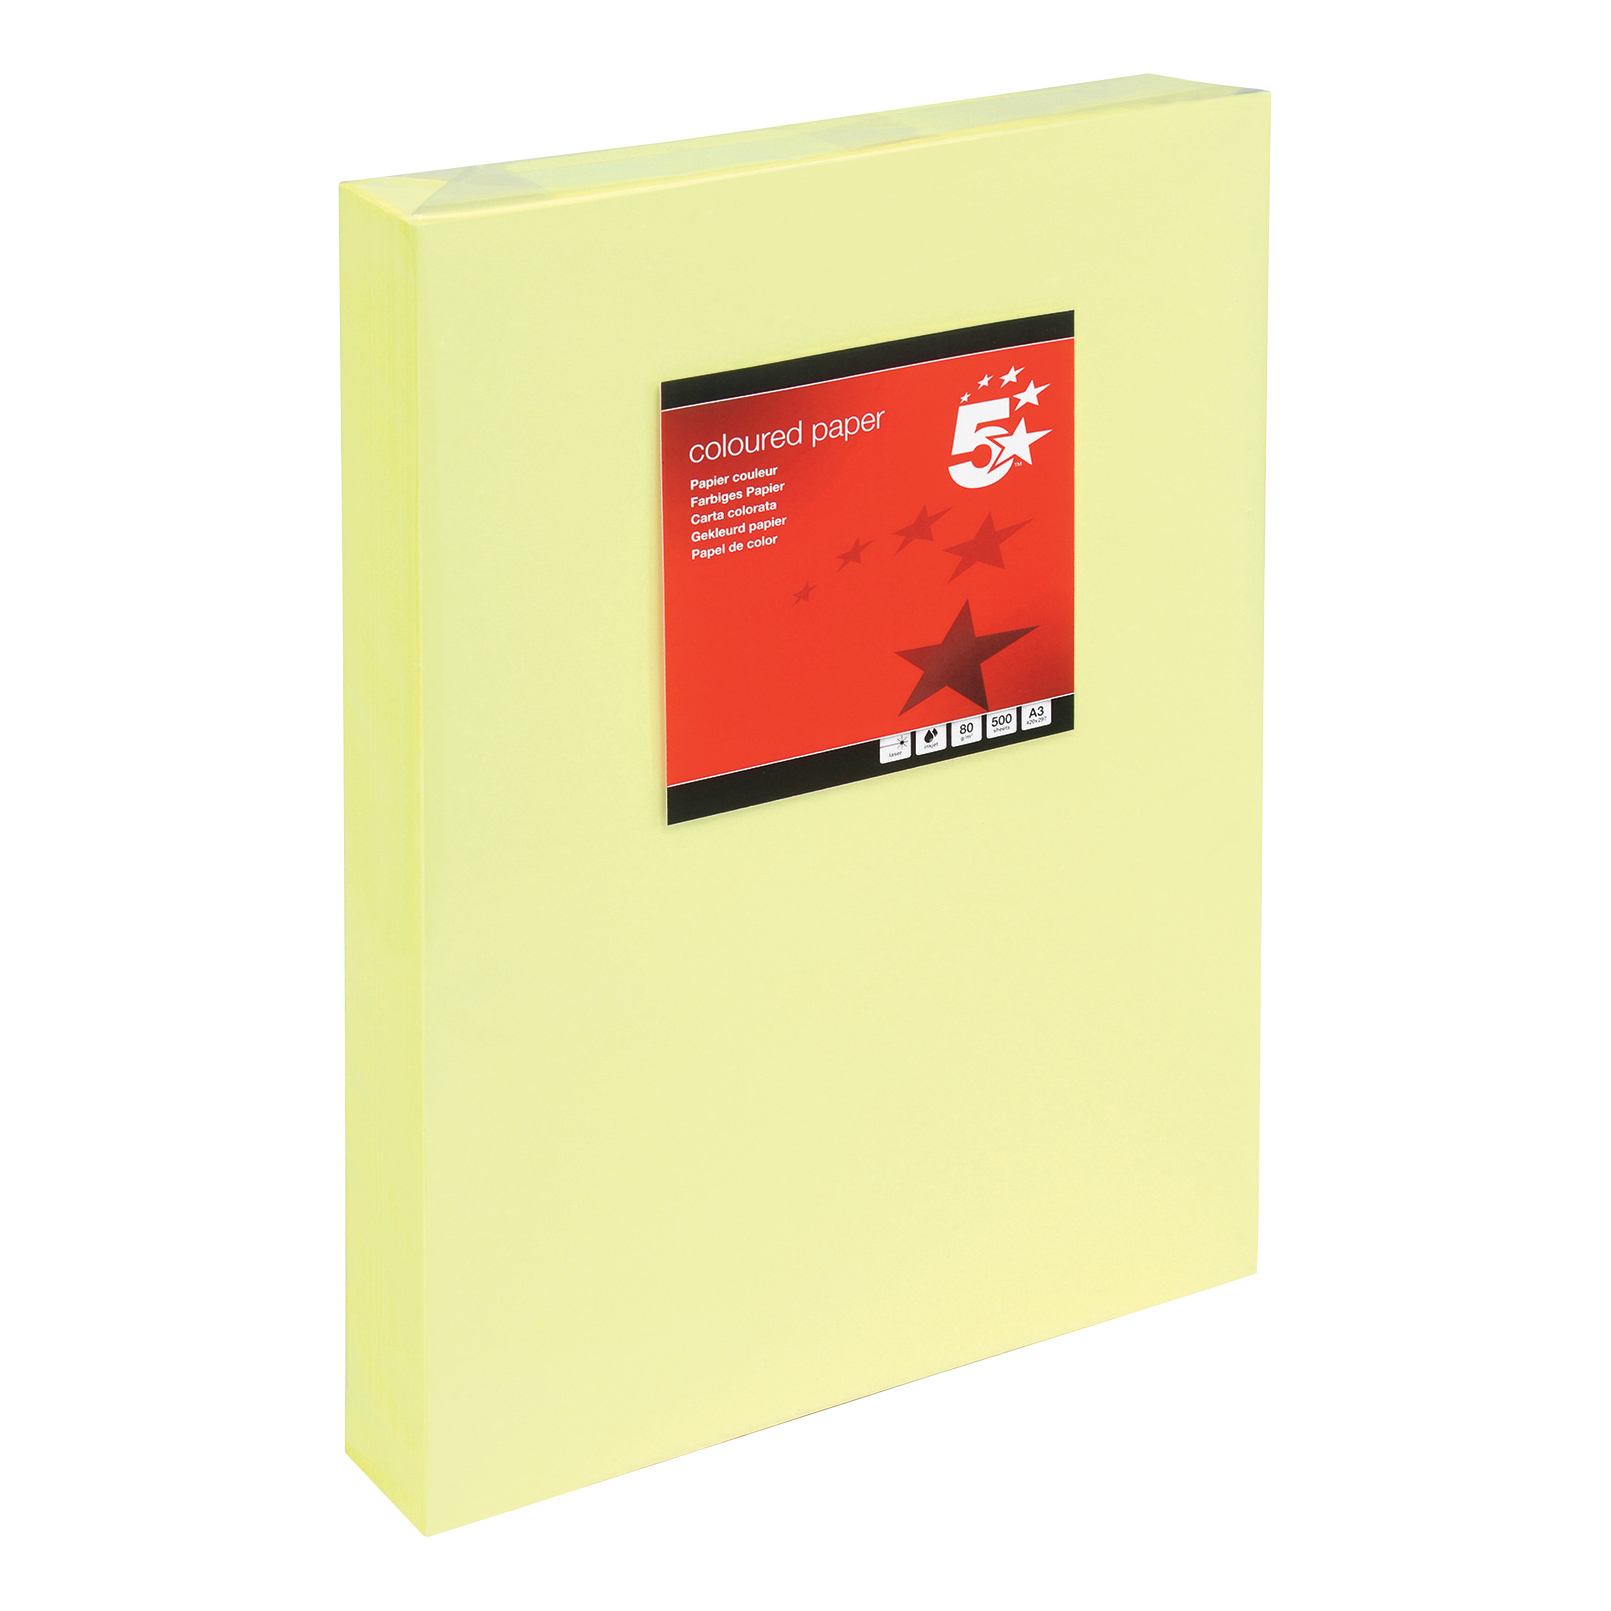 A3 5 Star Office Coloured Copier Paper Multifunctional Ream-Wrapped 80gsm A3 Light Yellow 500 Sheets